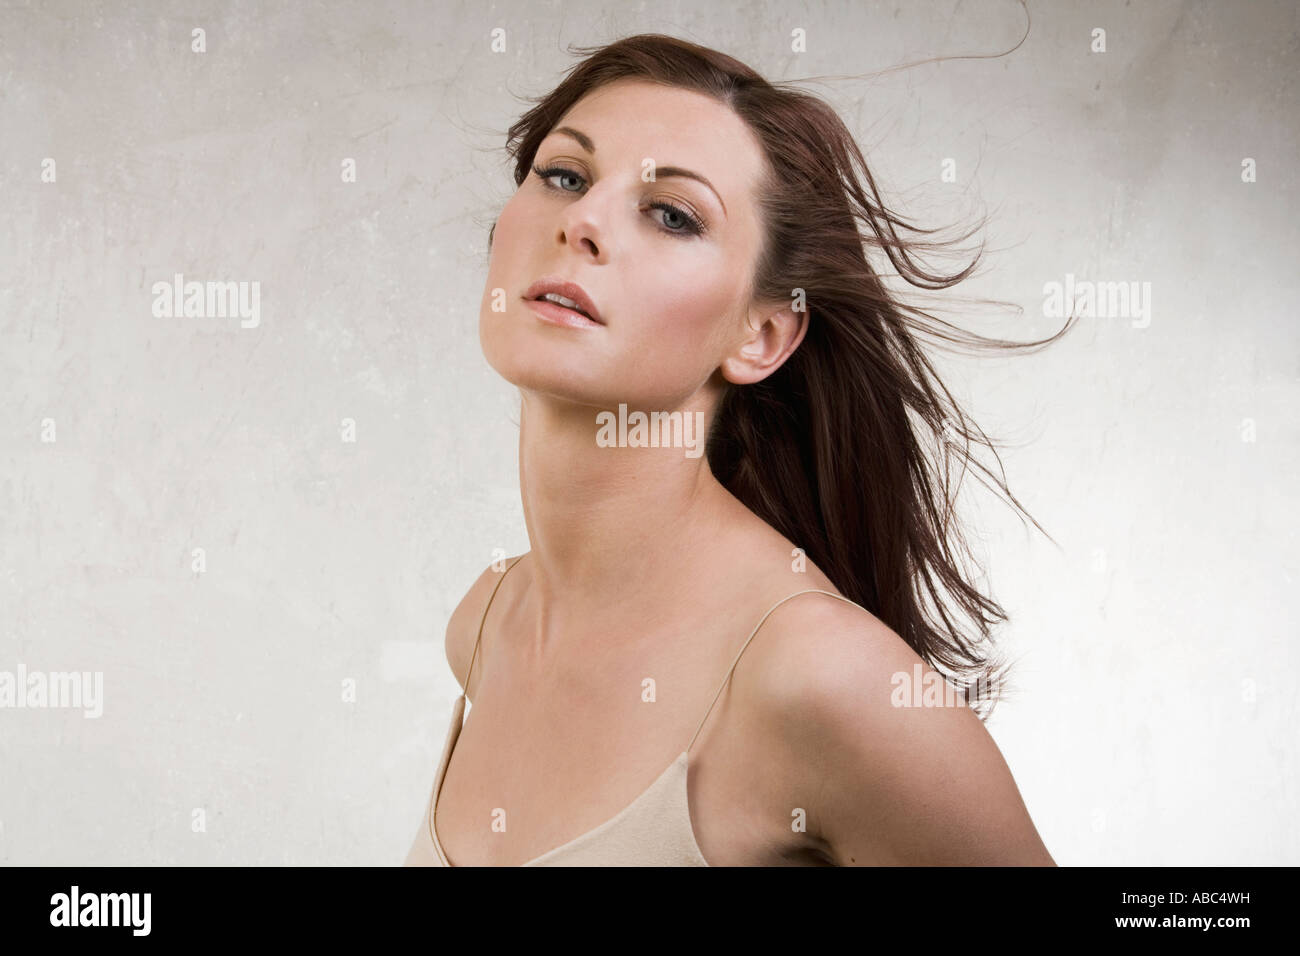 headshot of lascivious young woman - Stock Image